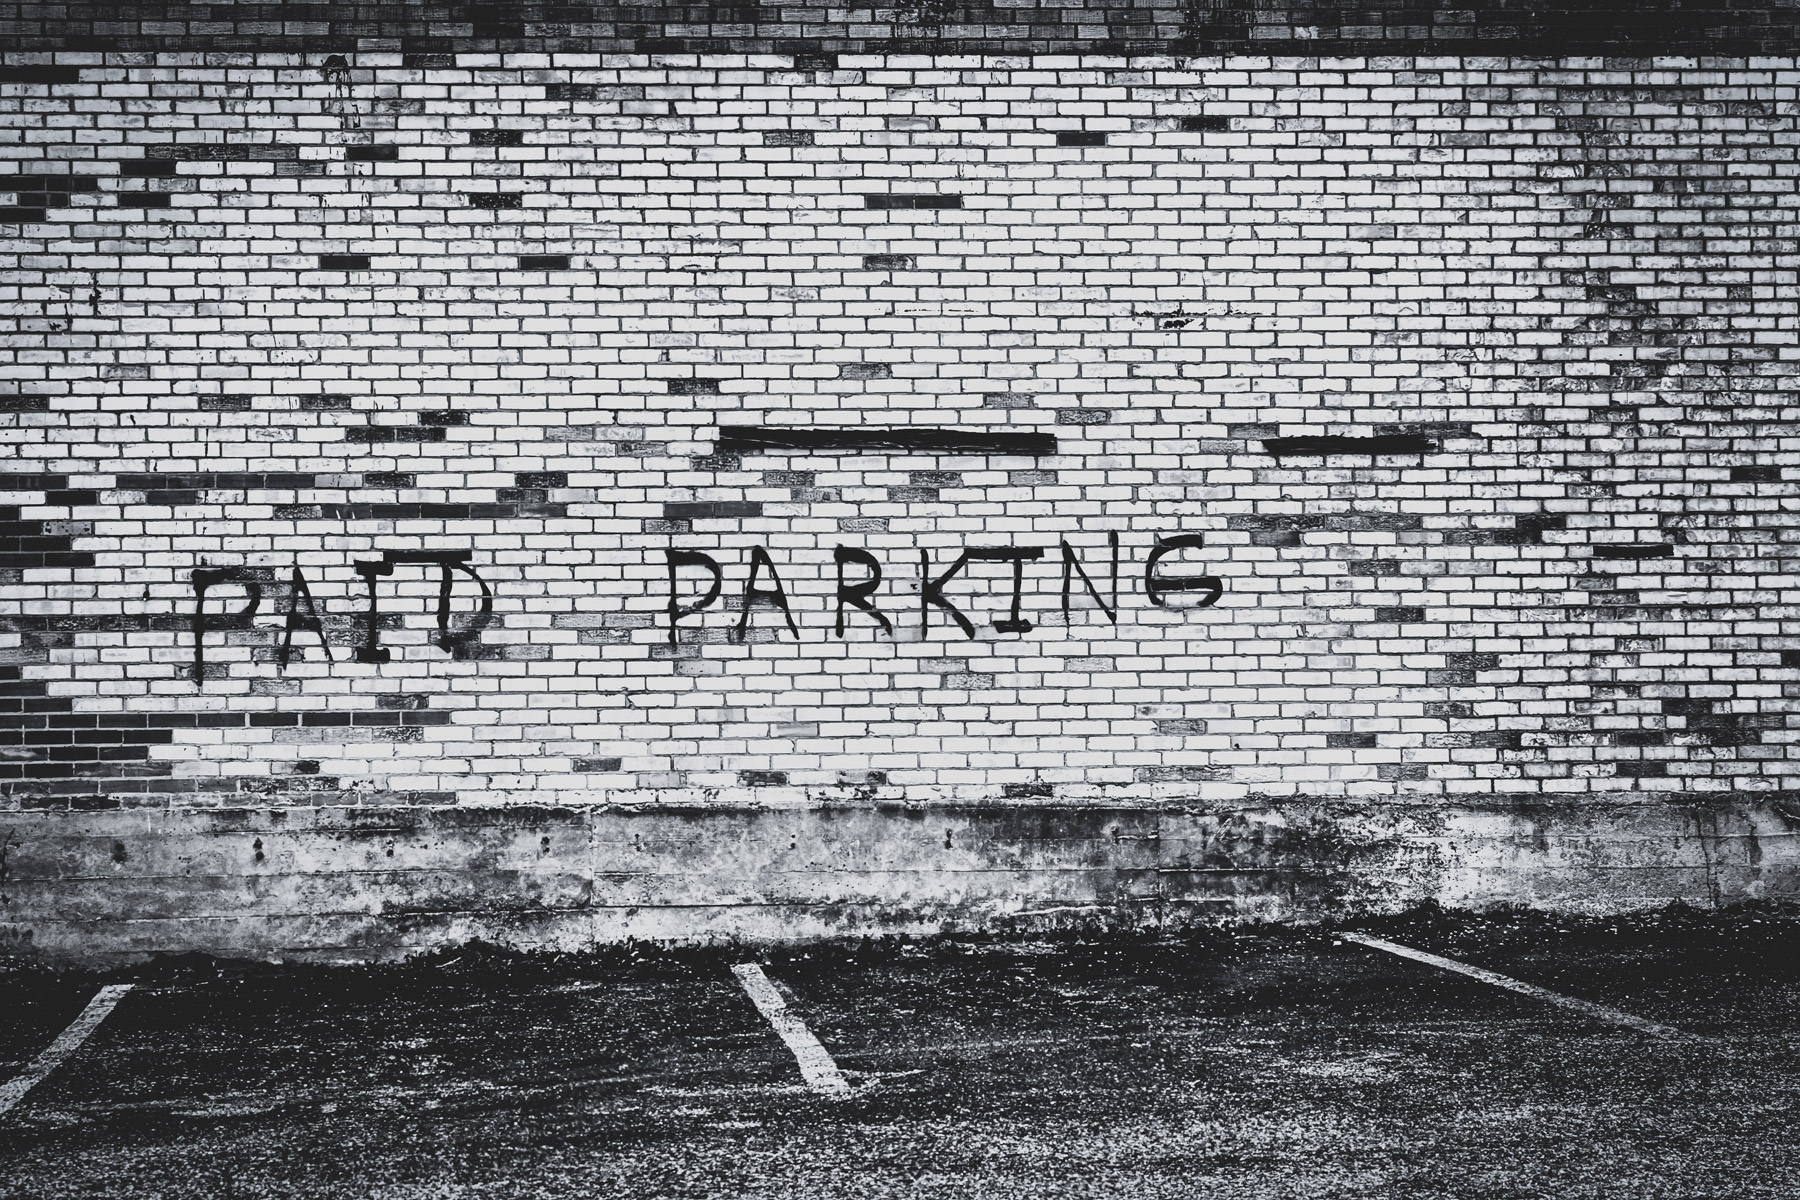 An admonishment in Downtown Tyler, Texas, blurs the line between sign and graffiti.